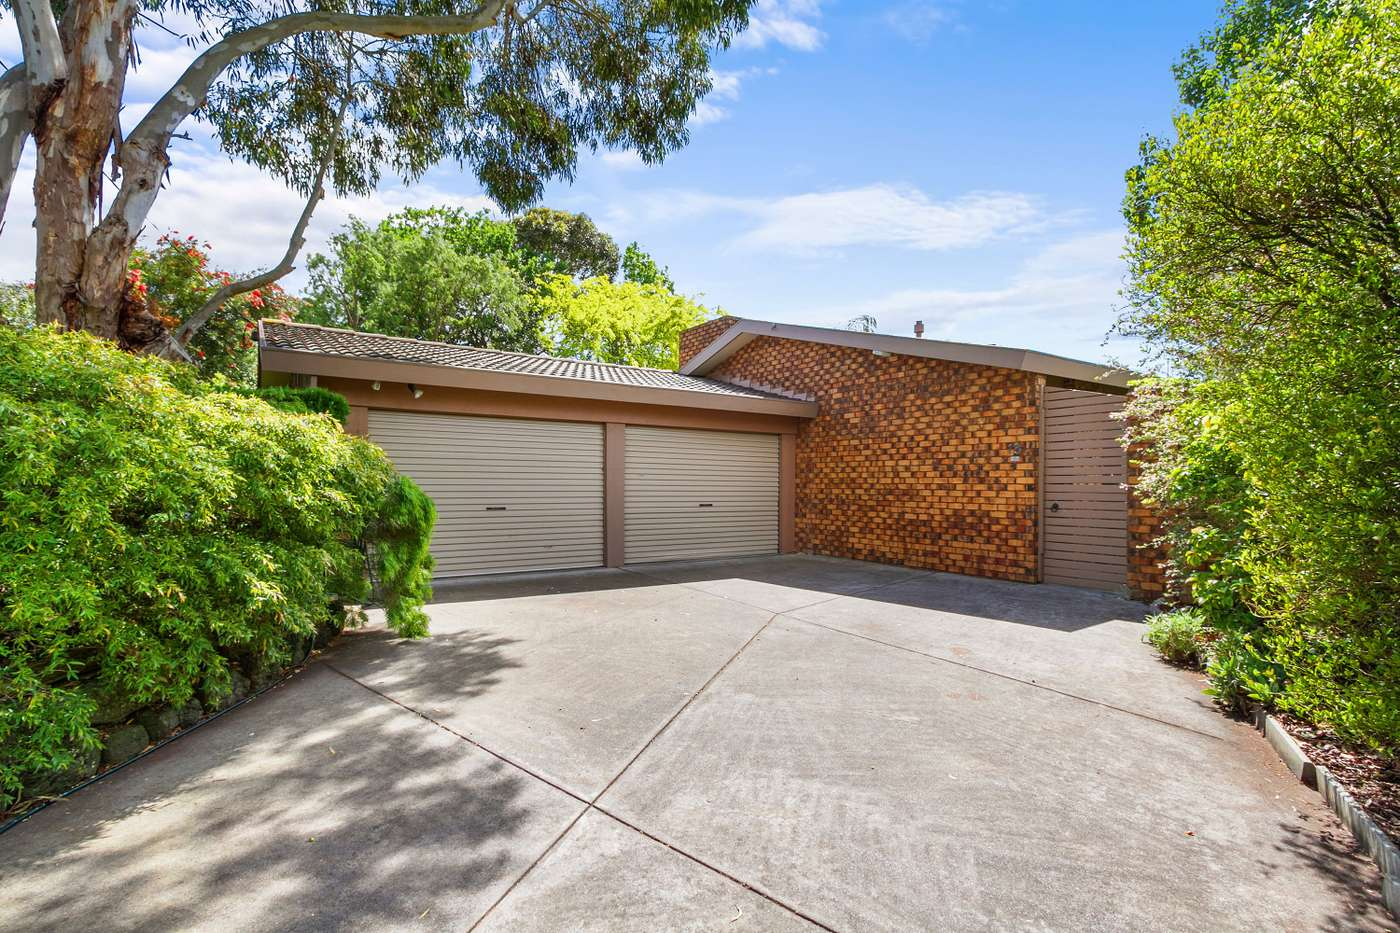 Main view of Homely house listing, 18 Glenlee Court, Traralgon, VIC 3844